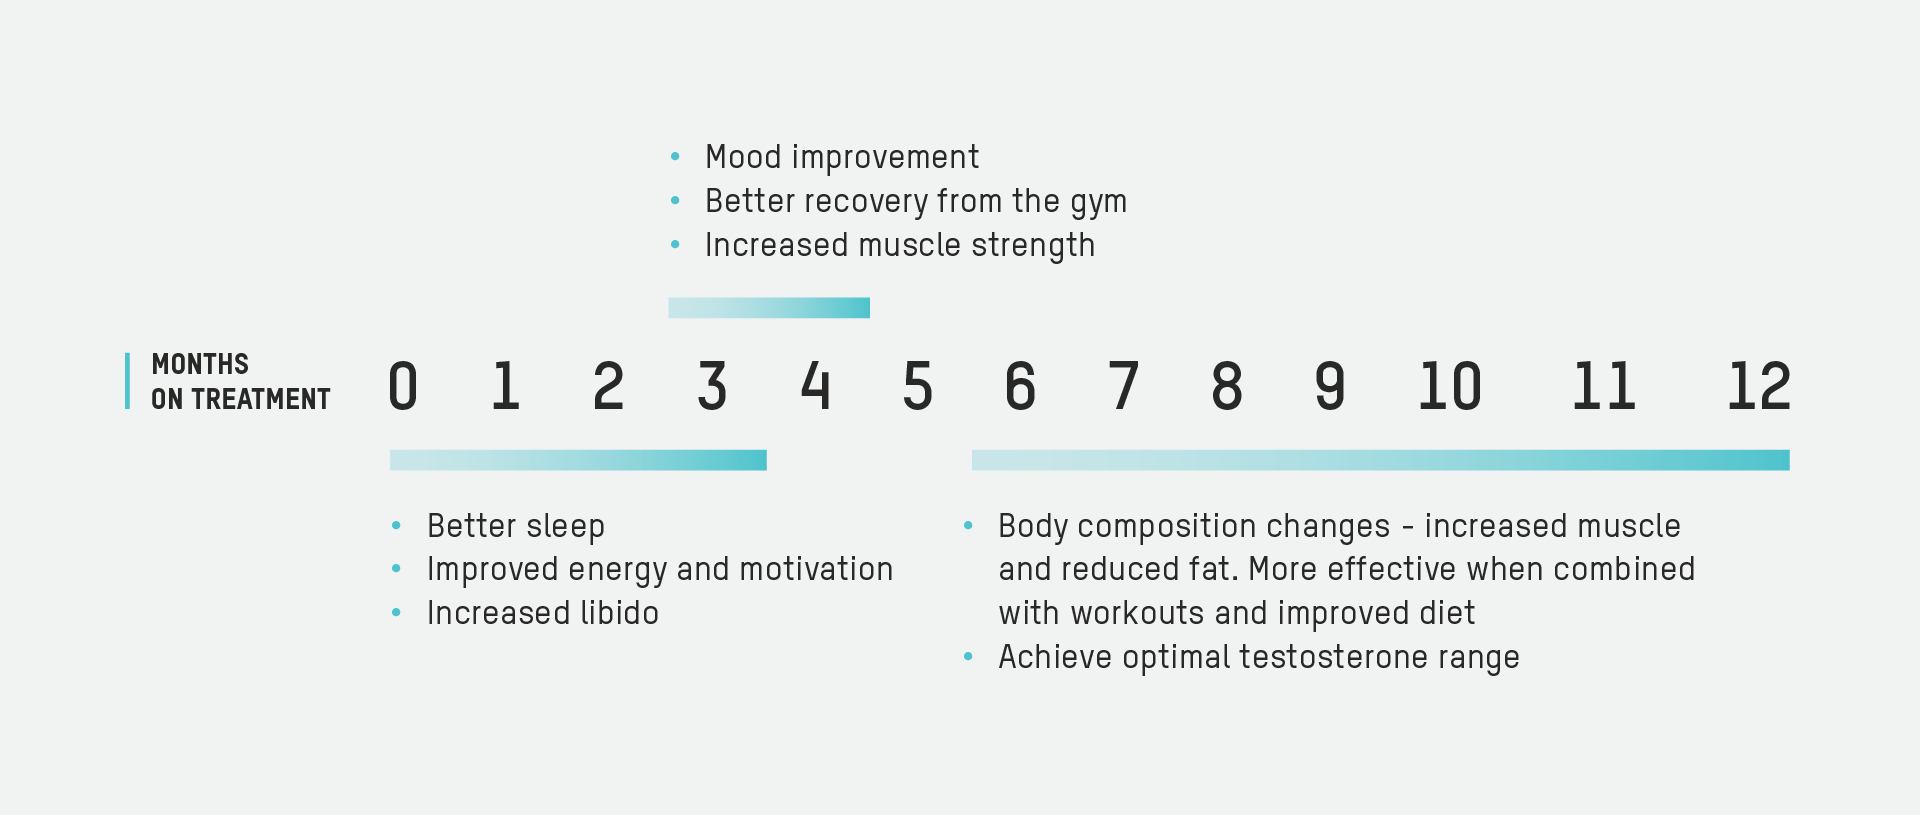 Testosterone replacement optimization timeline results